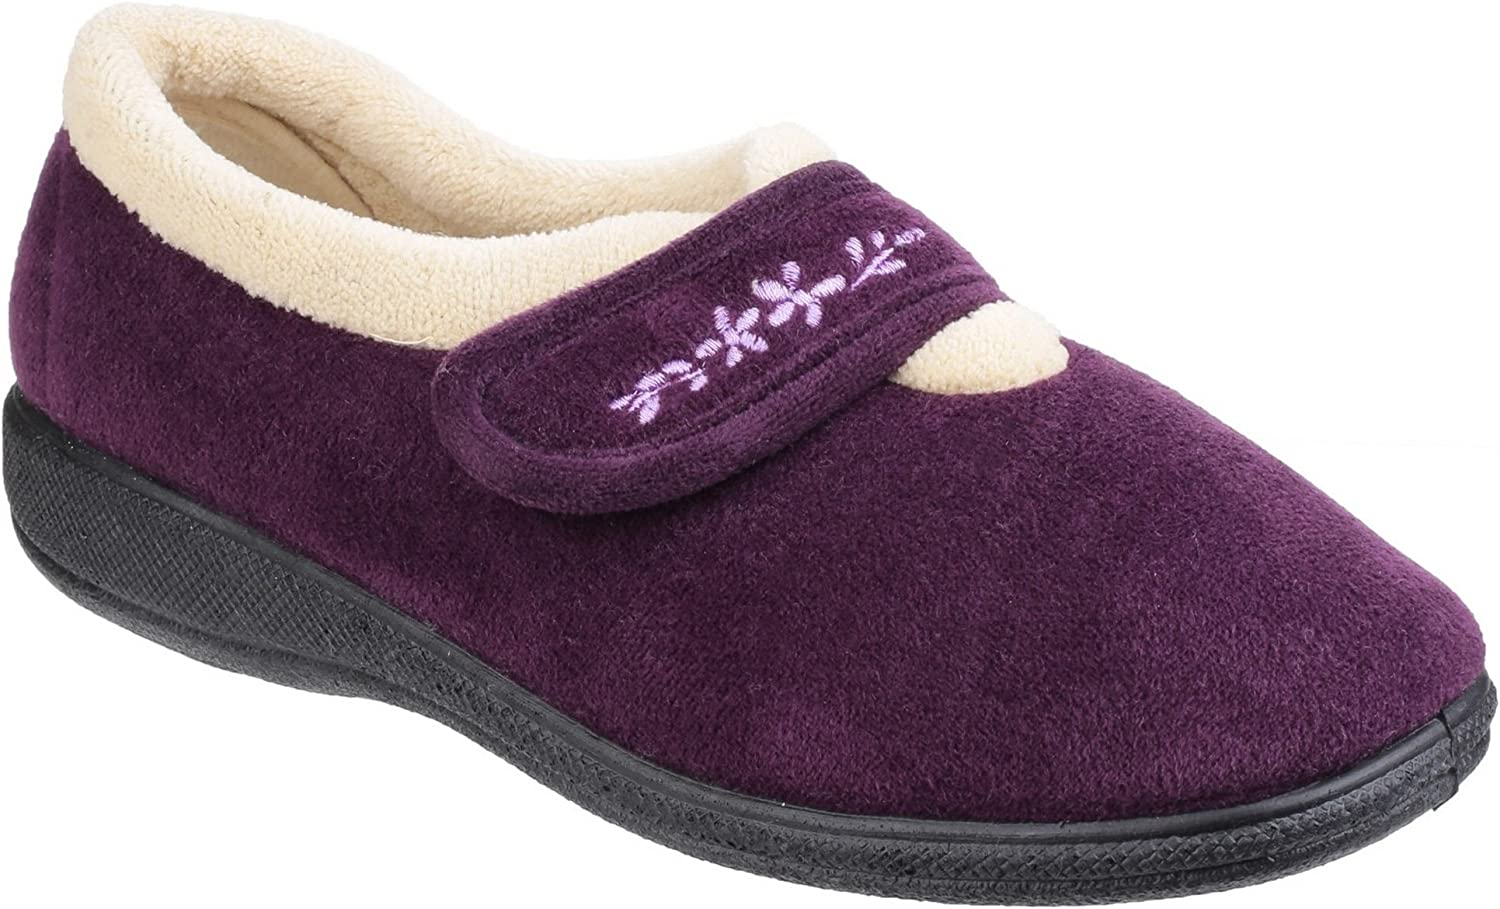 Fleet & Foster Womens Capa Touch Fastening Memory Foam Slipper Plum Size UK 6 EU 39